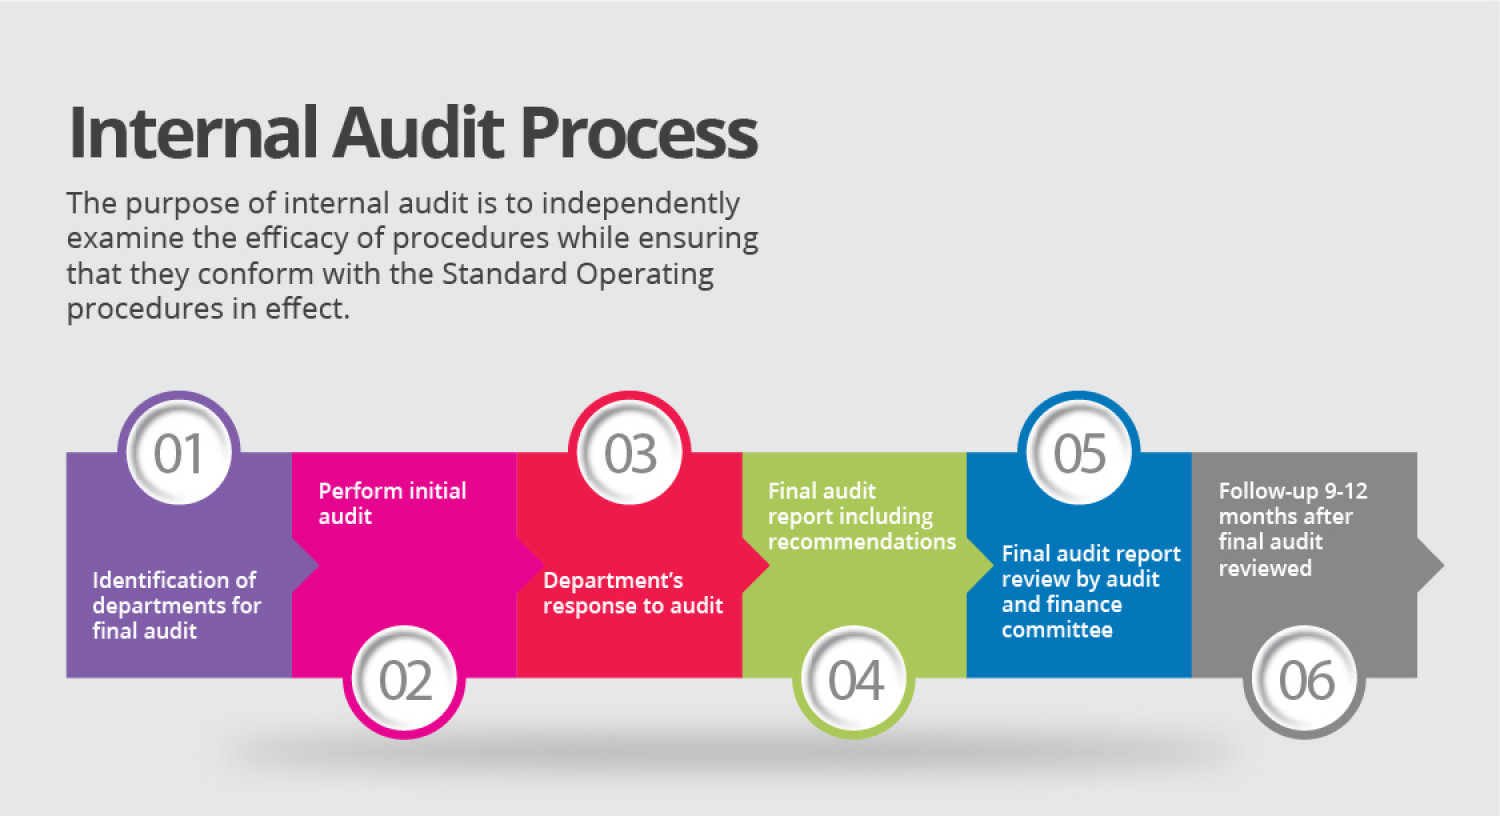 process control and audit guidelines It standards, guidelines, and tools and techniques for audit and assurance and control professionals code of professional ethics it audit and assurance standards, guidelines.